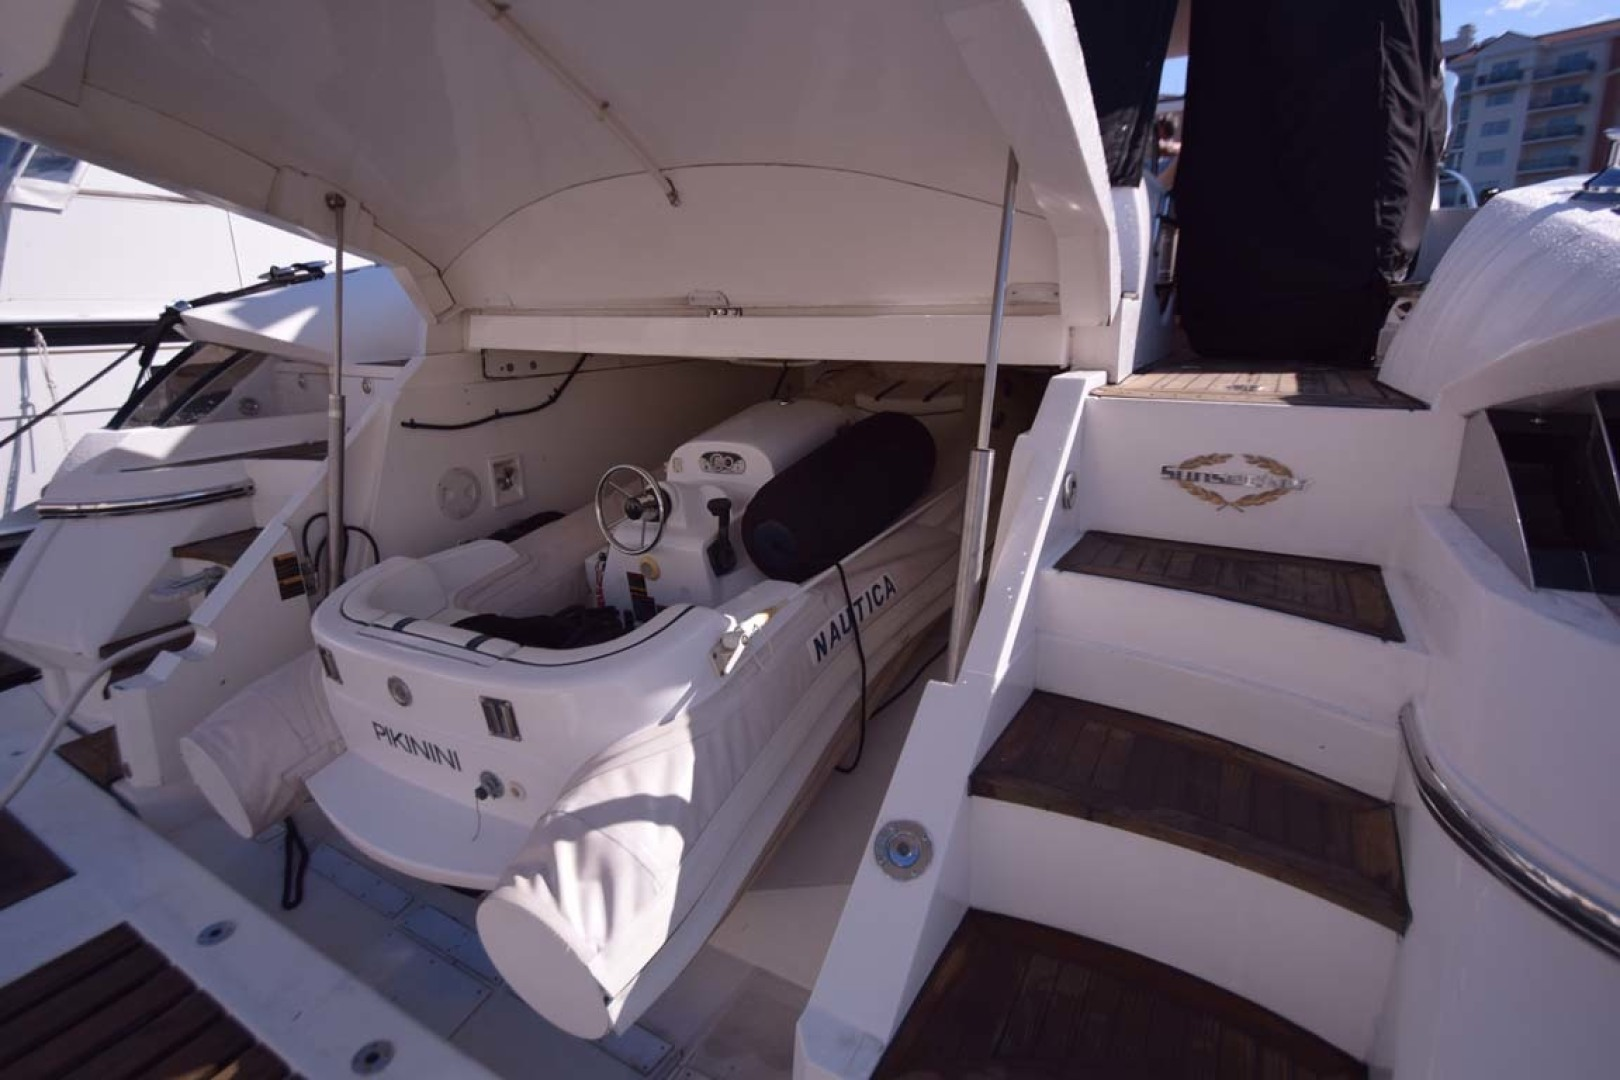 Sunseeker-Predator 2003-Low Profile PALM BEACH-Florida-United States-Tender In Garage From Stbd. Side-1576394 | Thumbnail